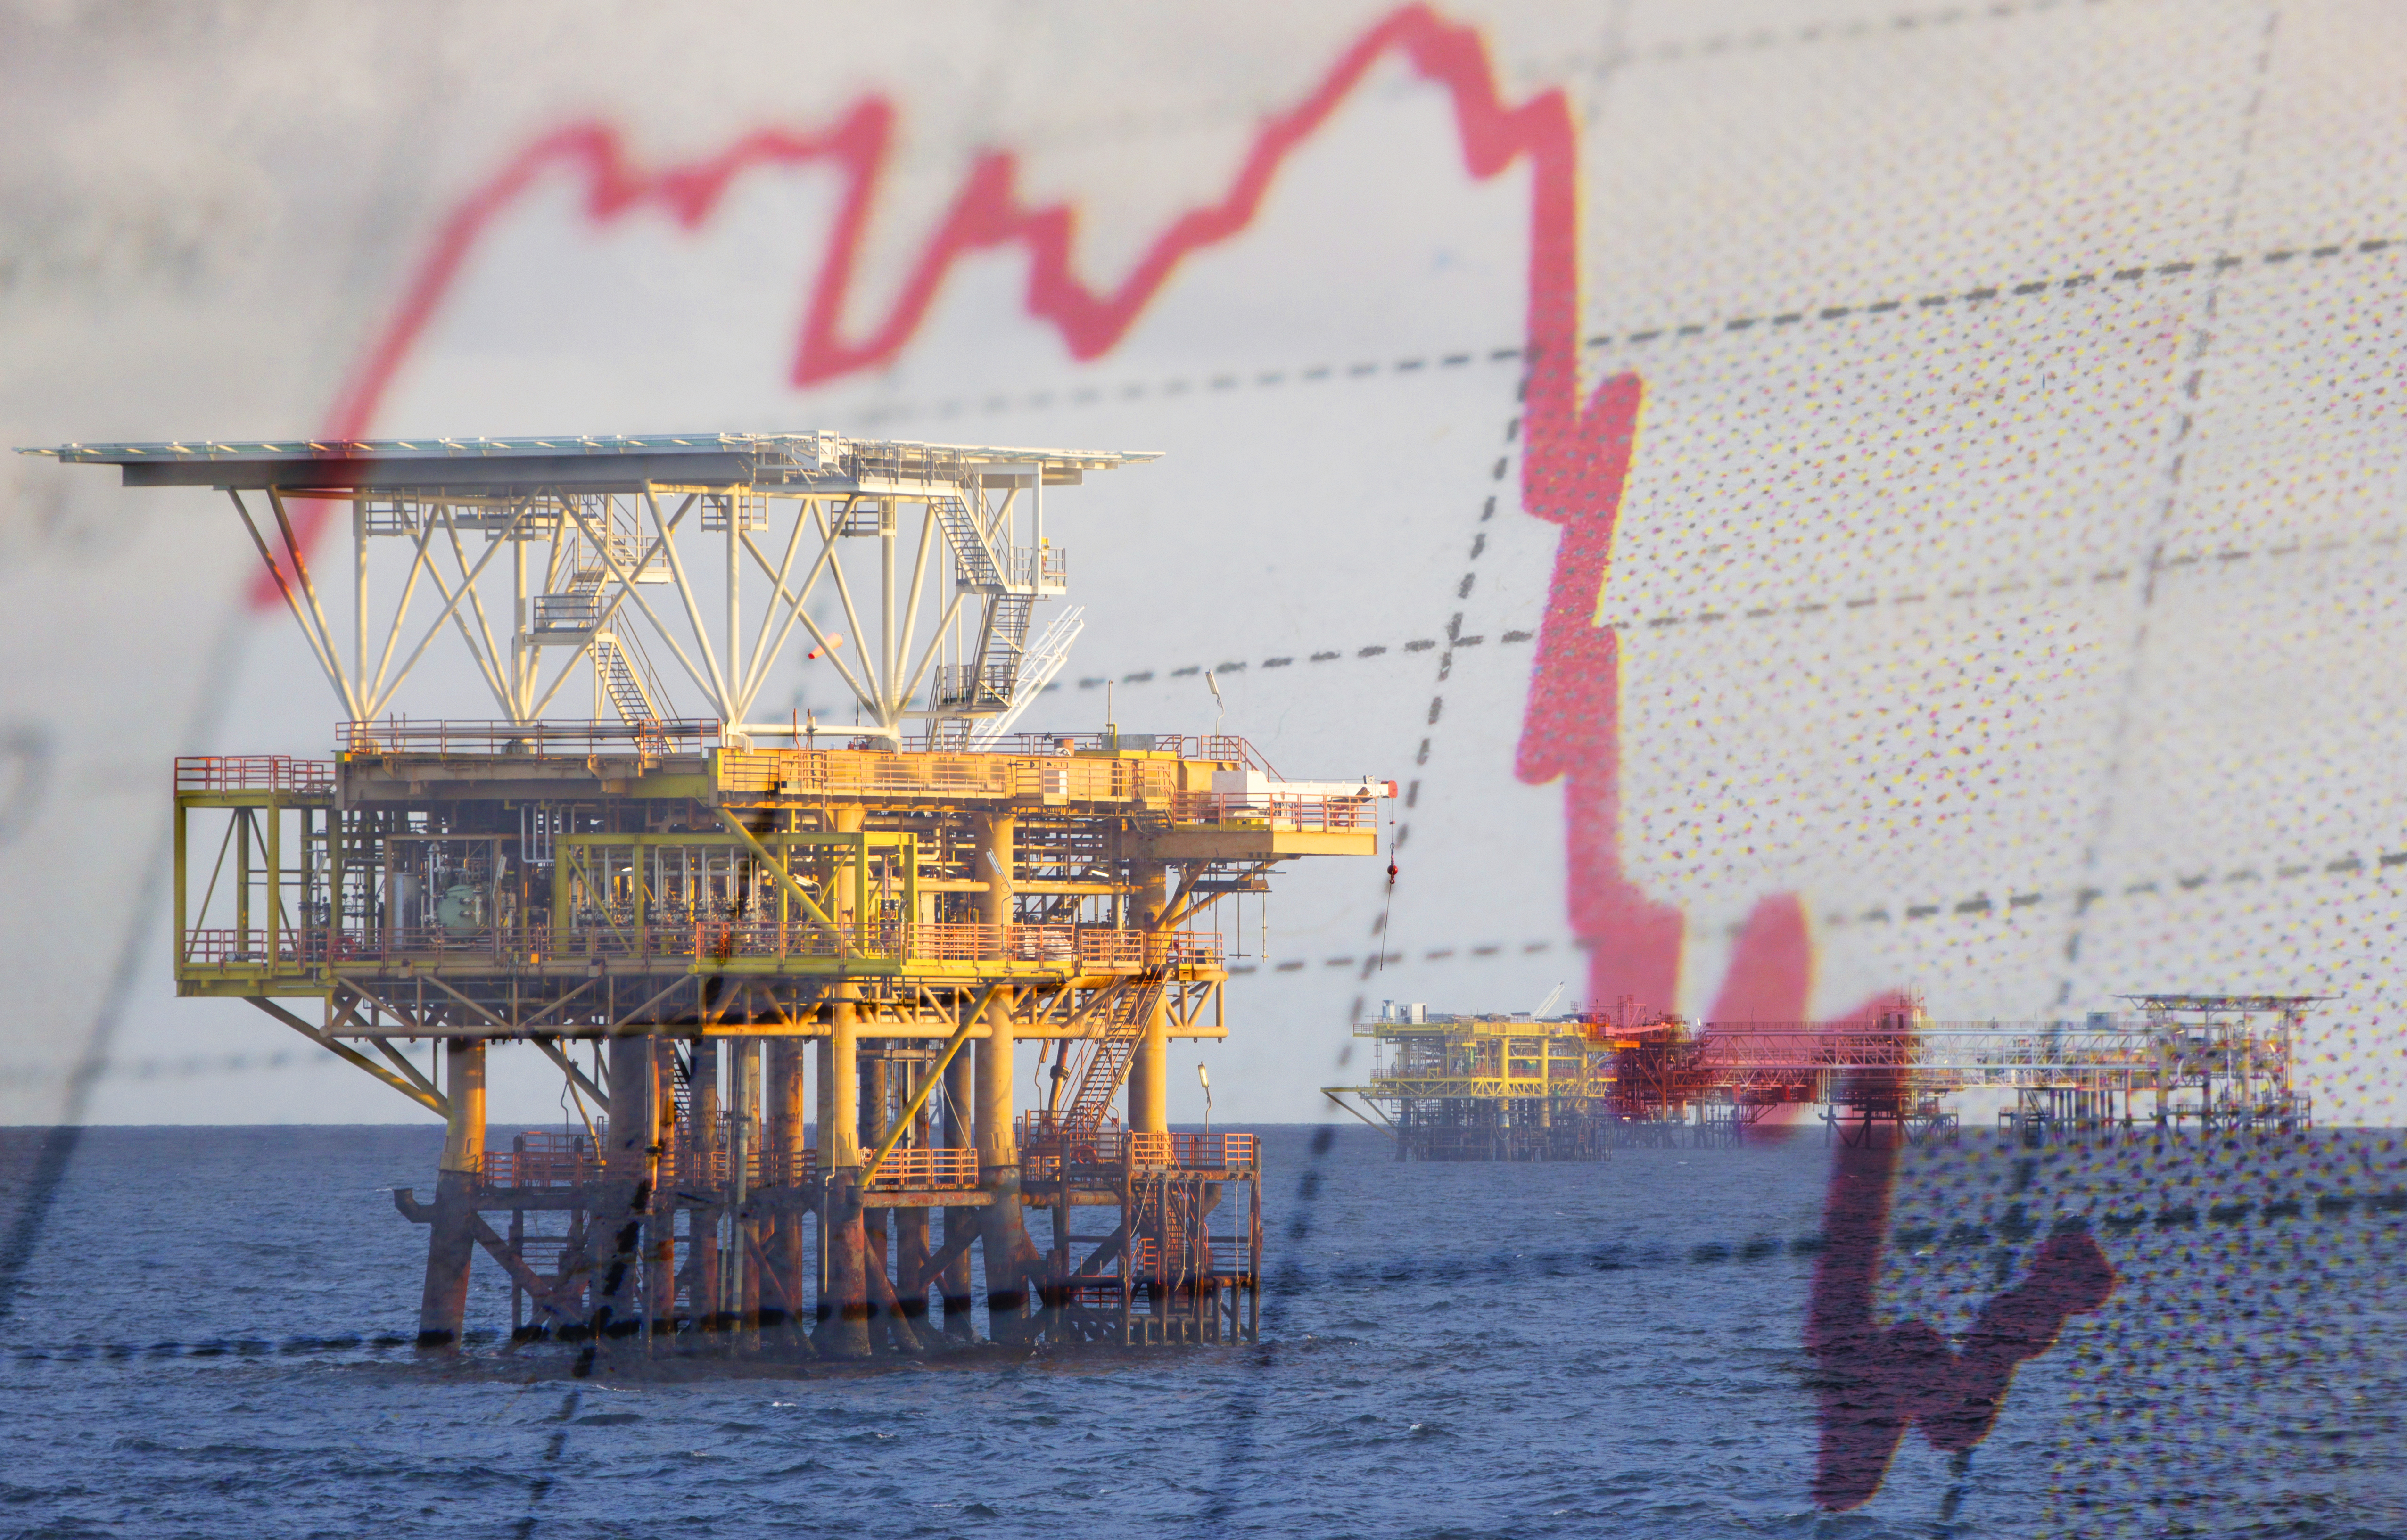 An oil rig in the ocean, seen in a reflection on a chart.